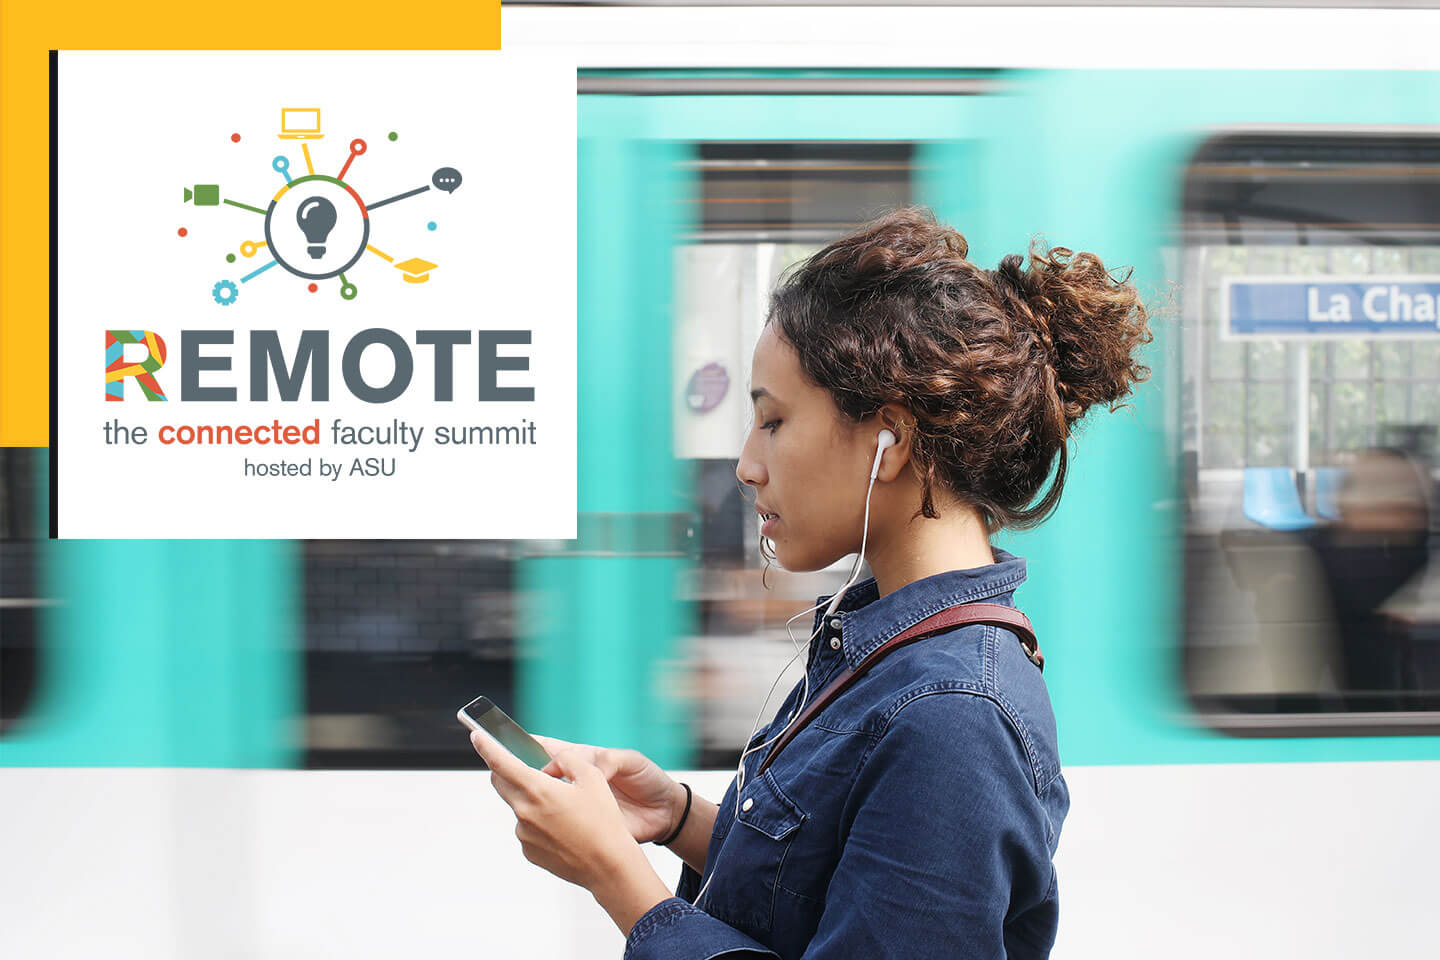 Woman on her phone with headphones. Logo on photo that states Remote the connected faculty summit hosted by ASU.